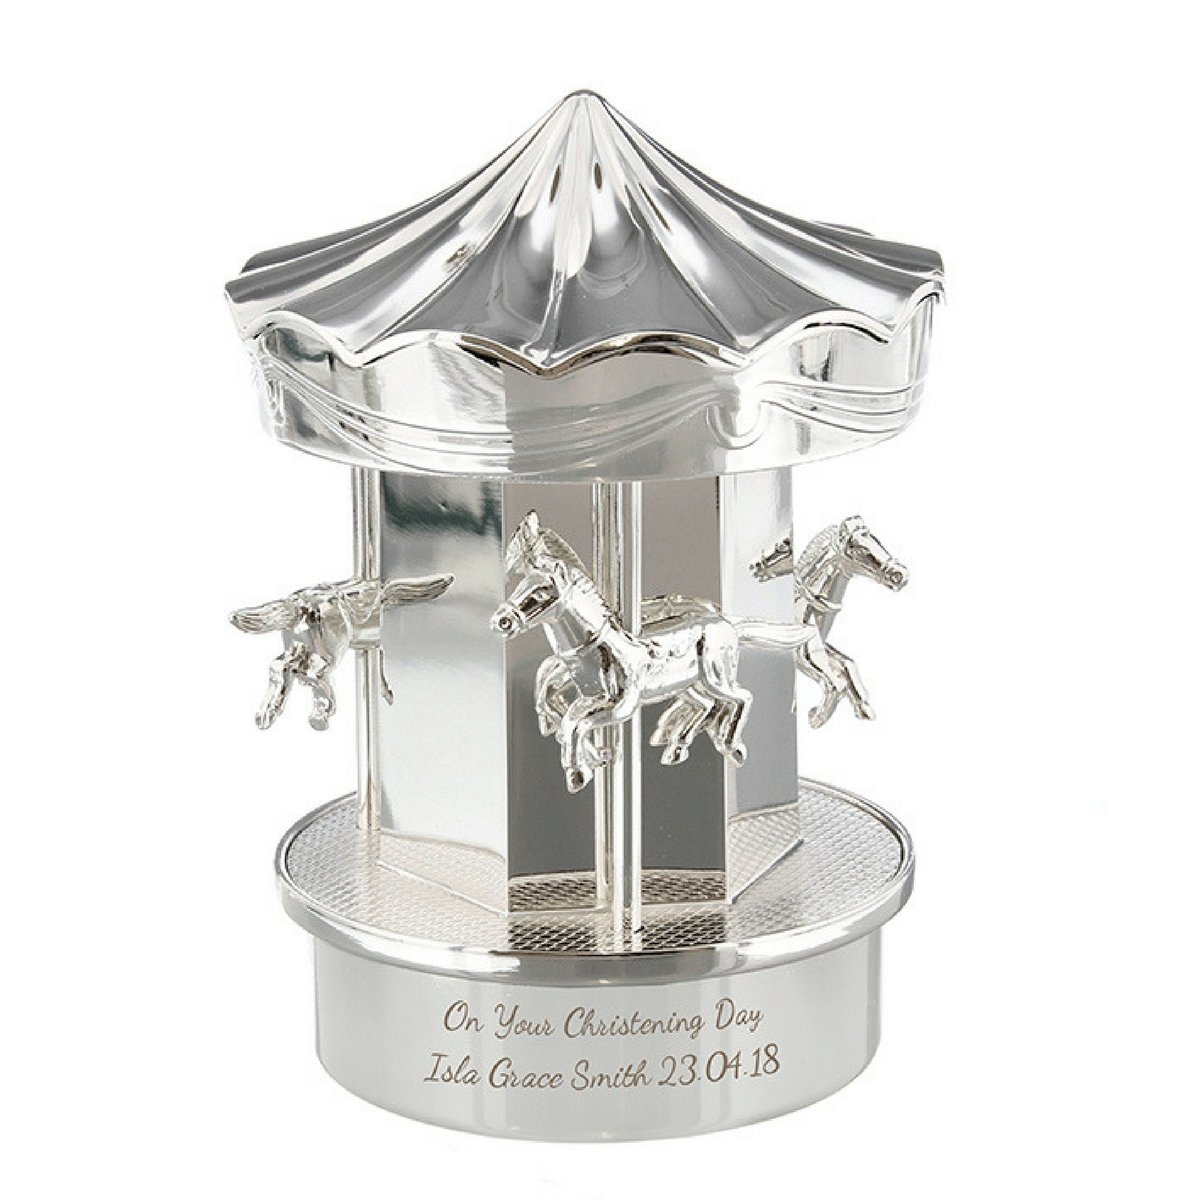 Personalised Engraved Carousel Money Box Newborn Baby Boys Girl Silver Christening Gifts - Child 1st Birthday Baptism Naming Ceremony Present Ideas from a Godparent PMC